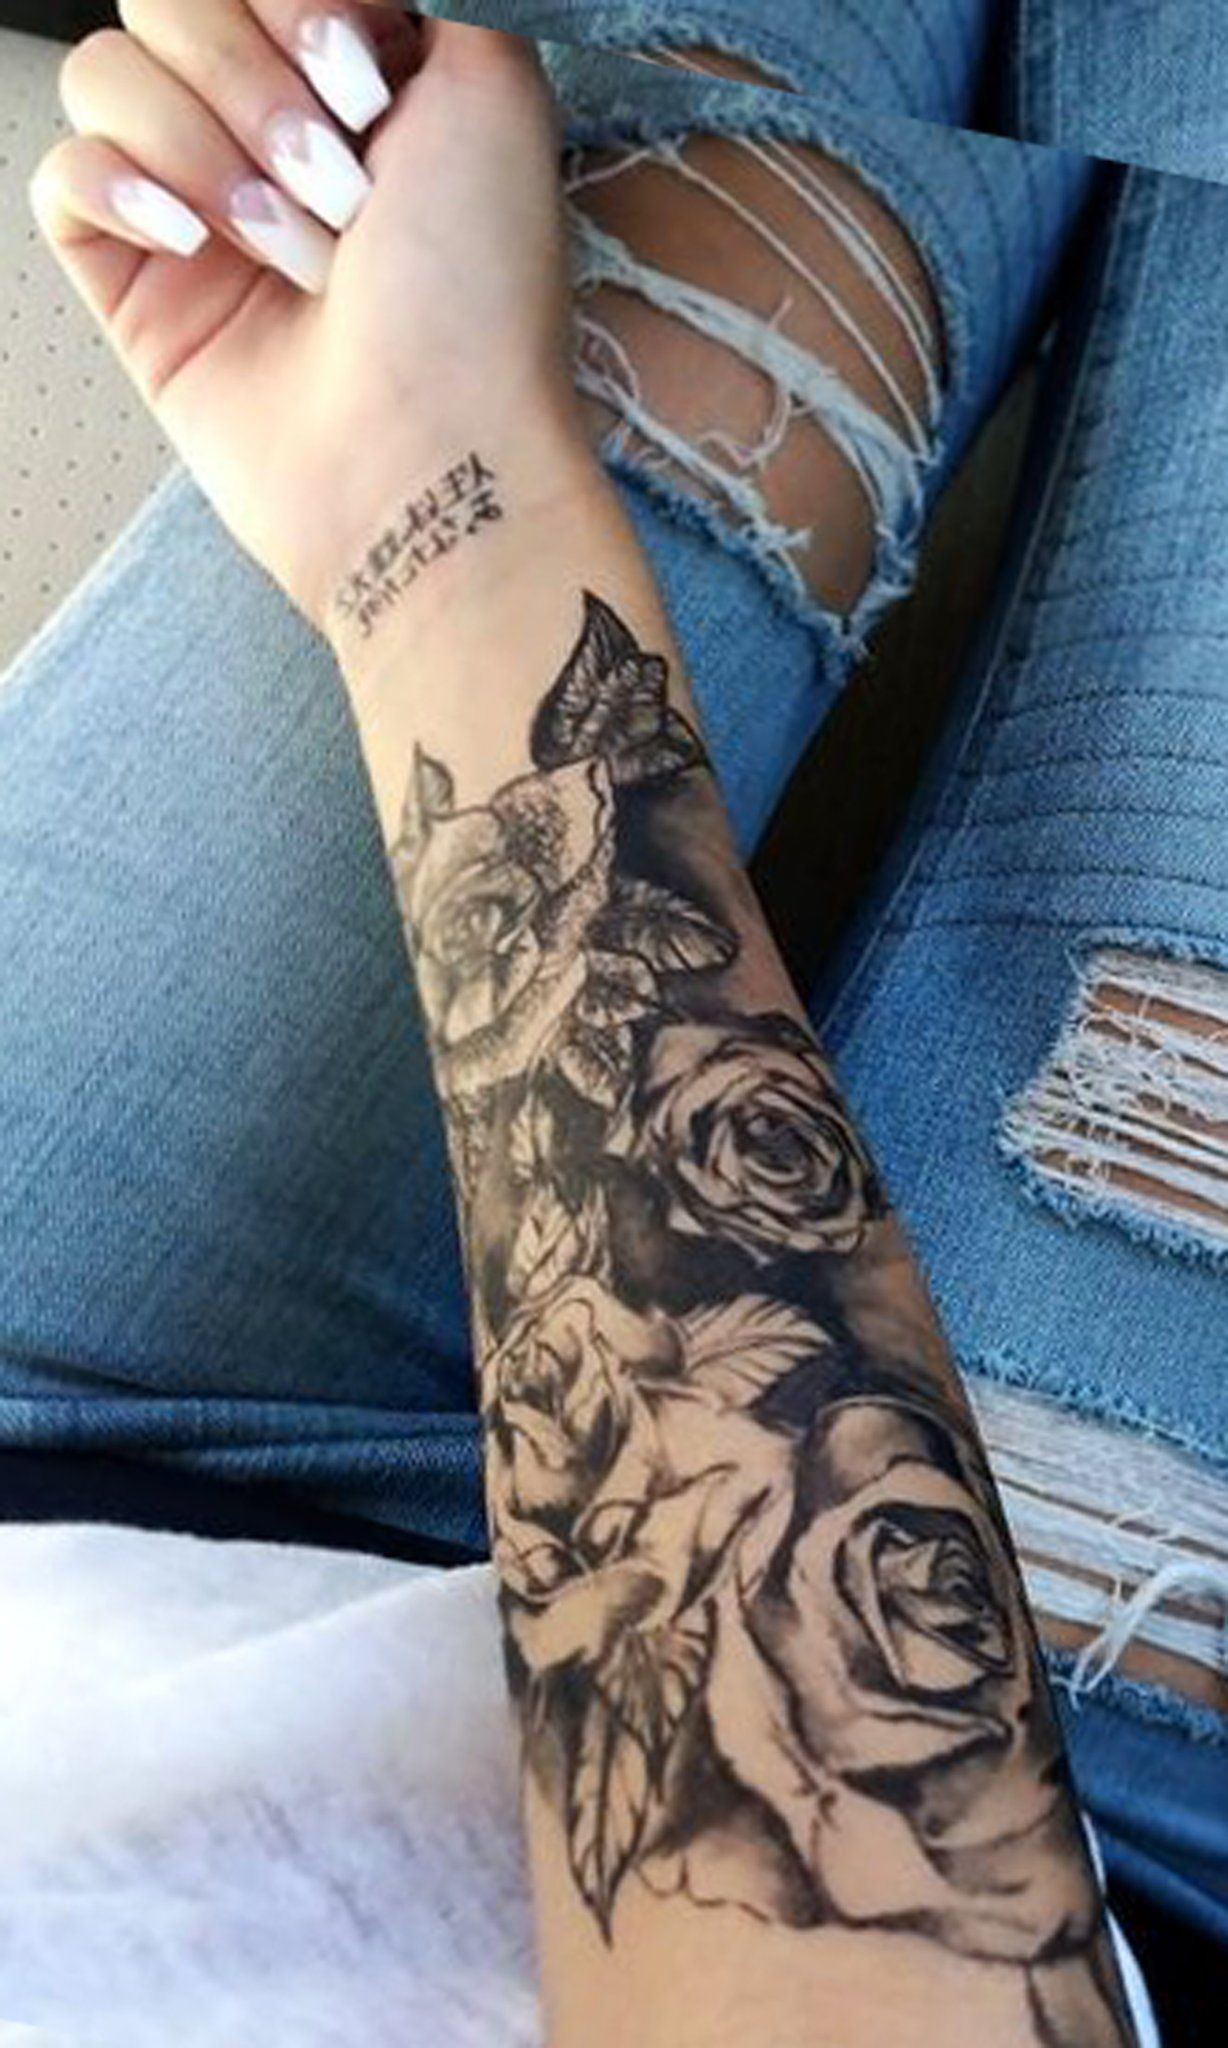 black rose forearm tattoo ideas  women realistic